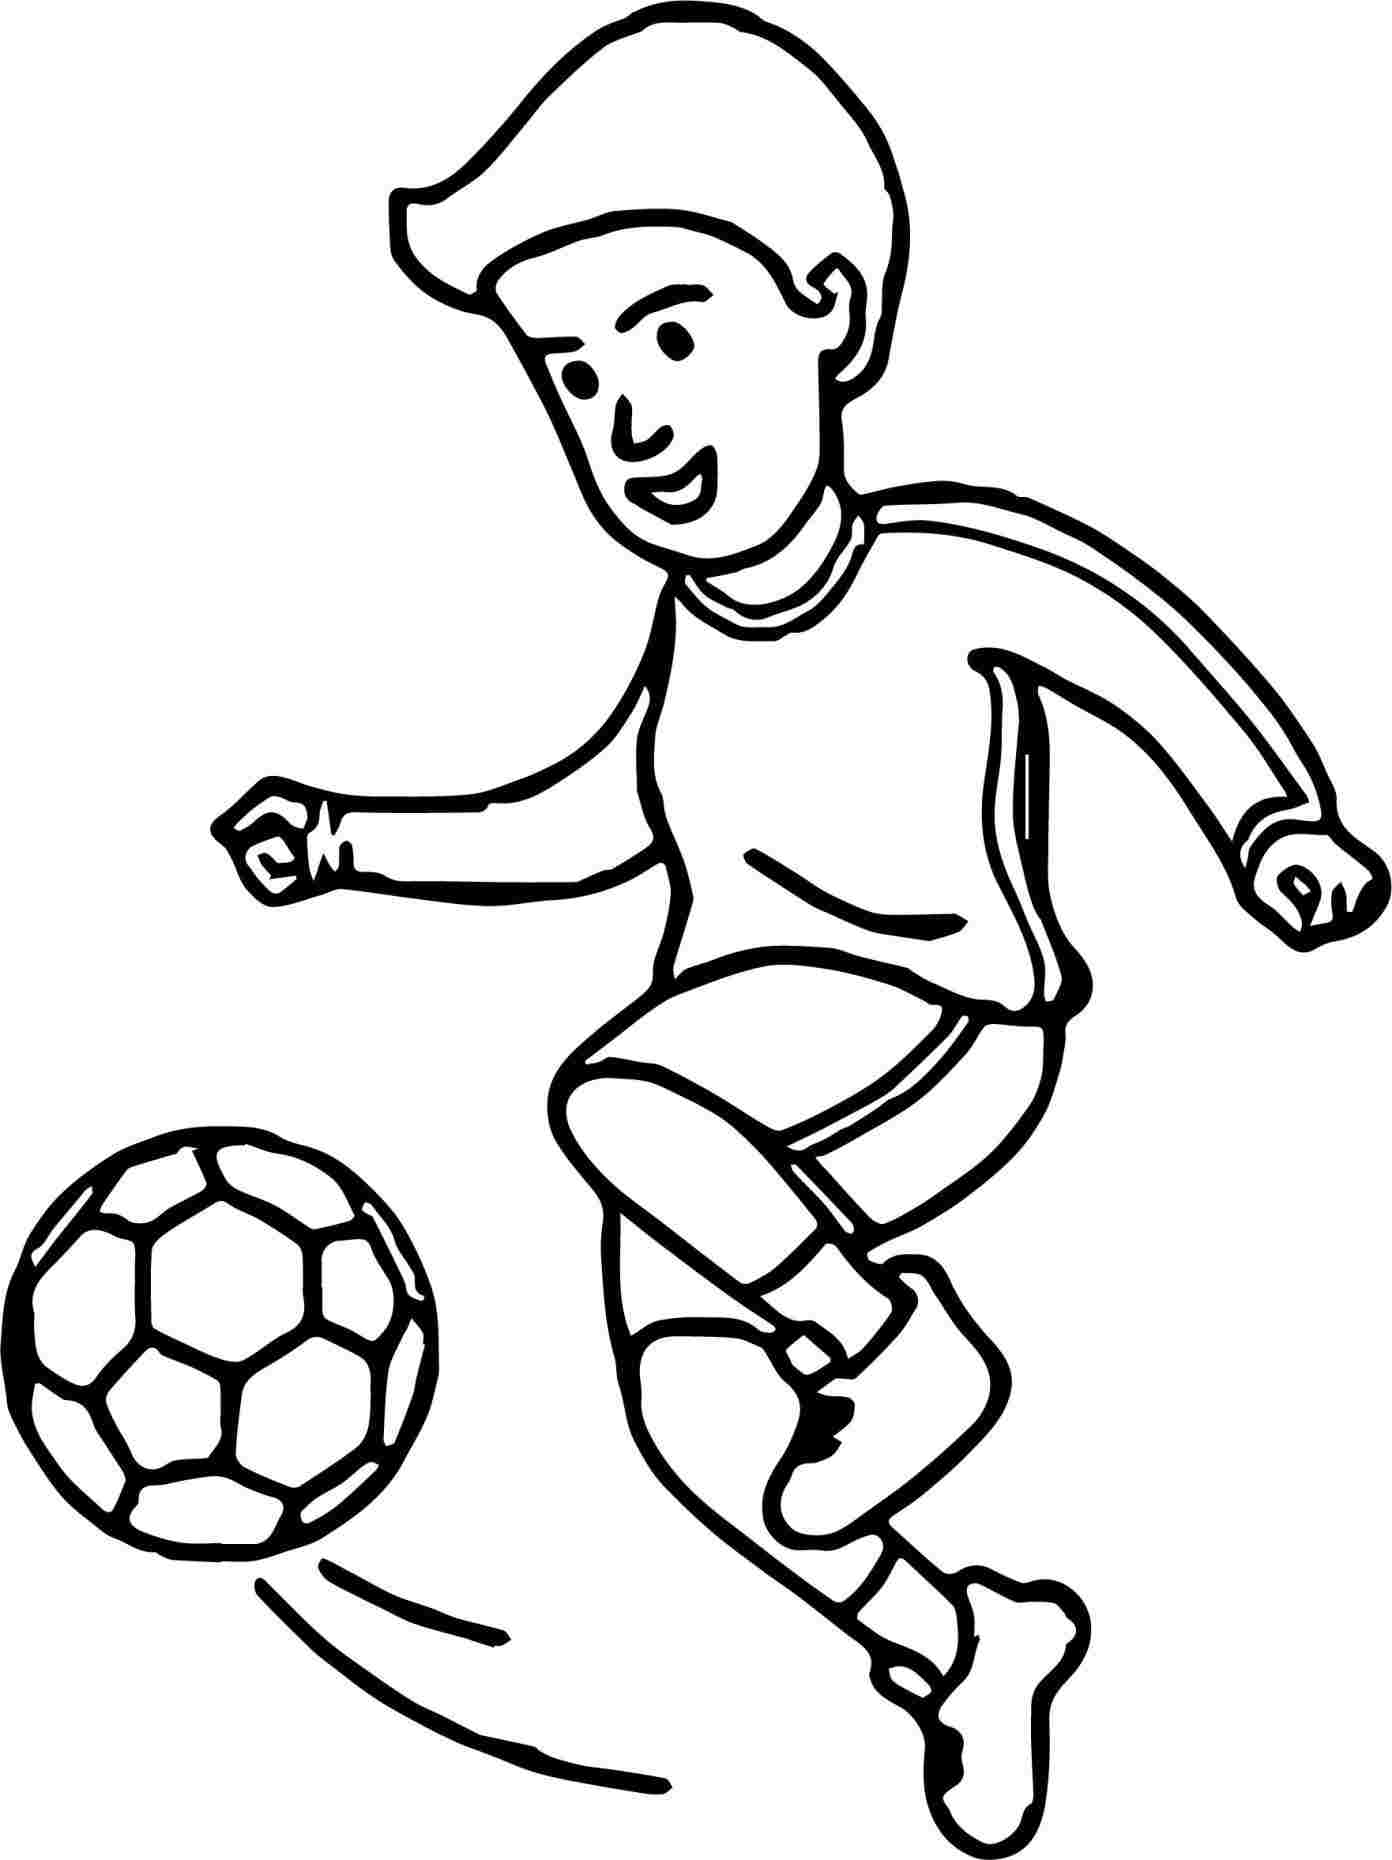 how to draw a football player step by step how to draw a football player step by step by football player step to draw step a how